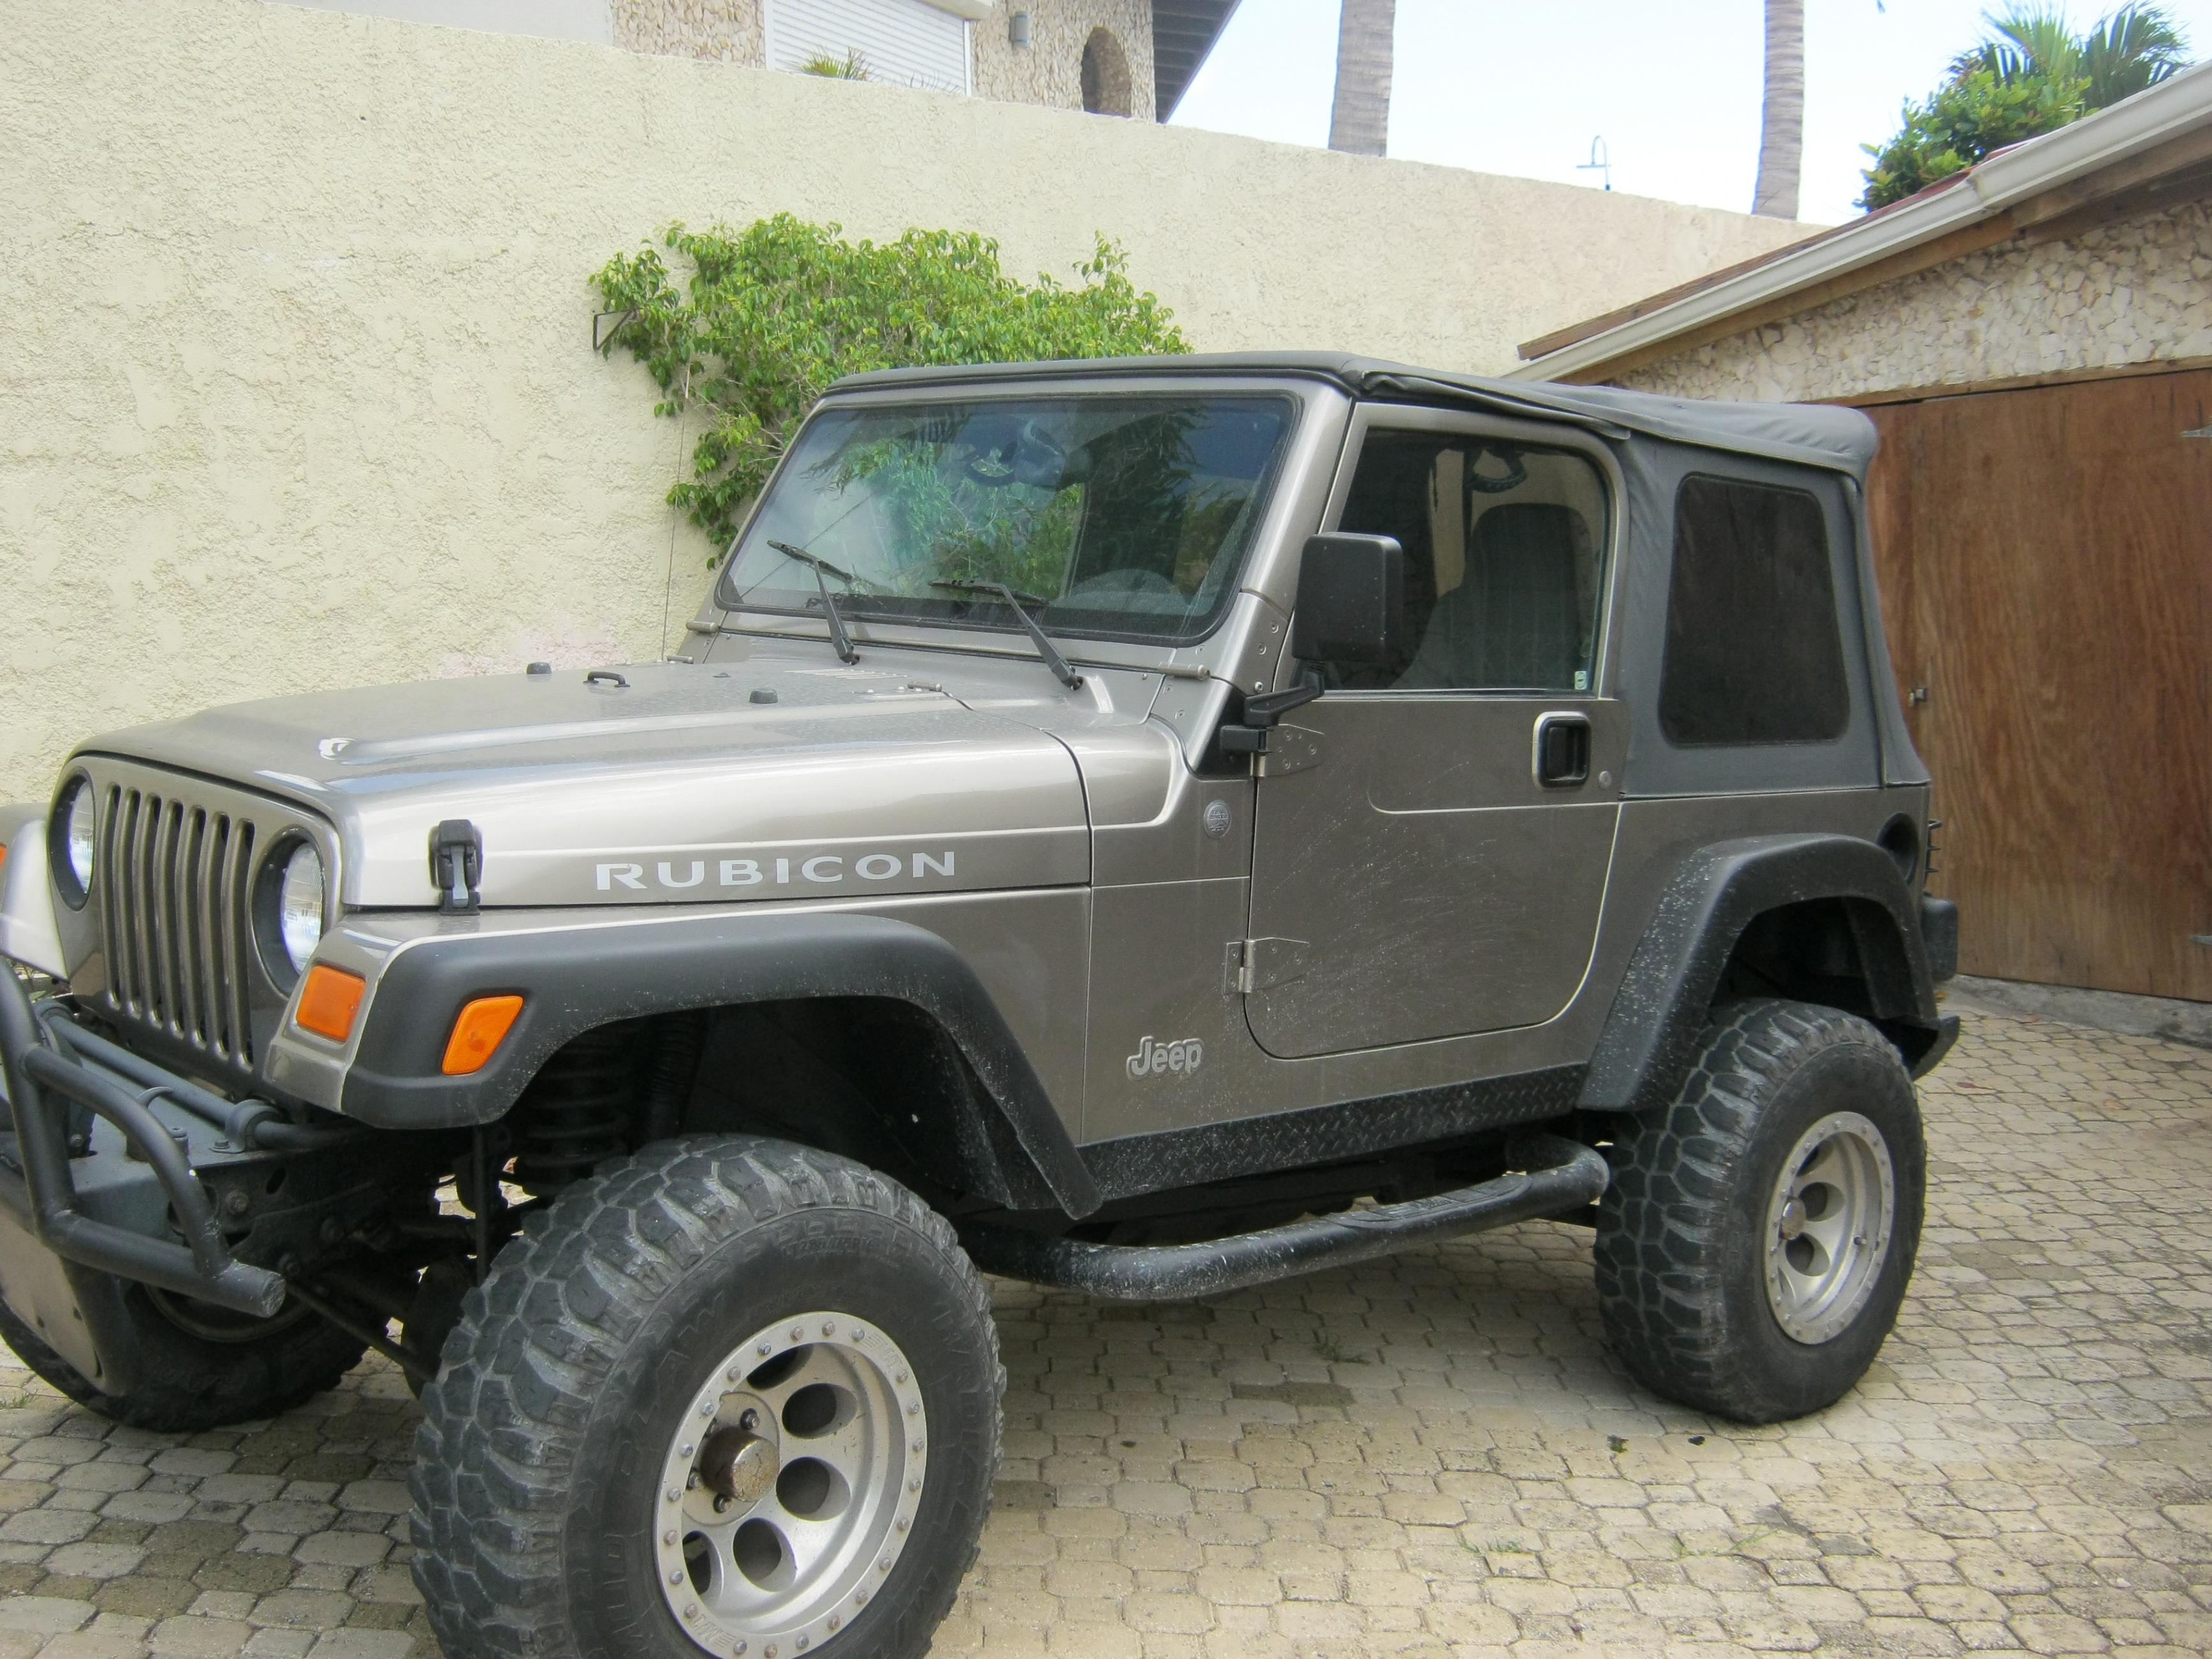 Awesome Jeep Wrangler Rubicon For Sale